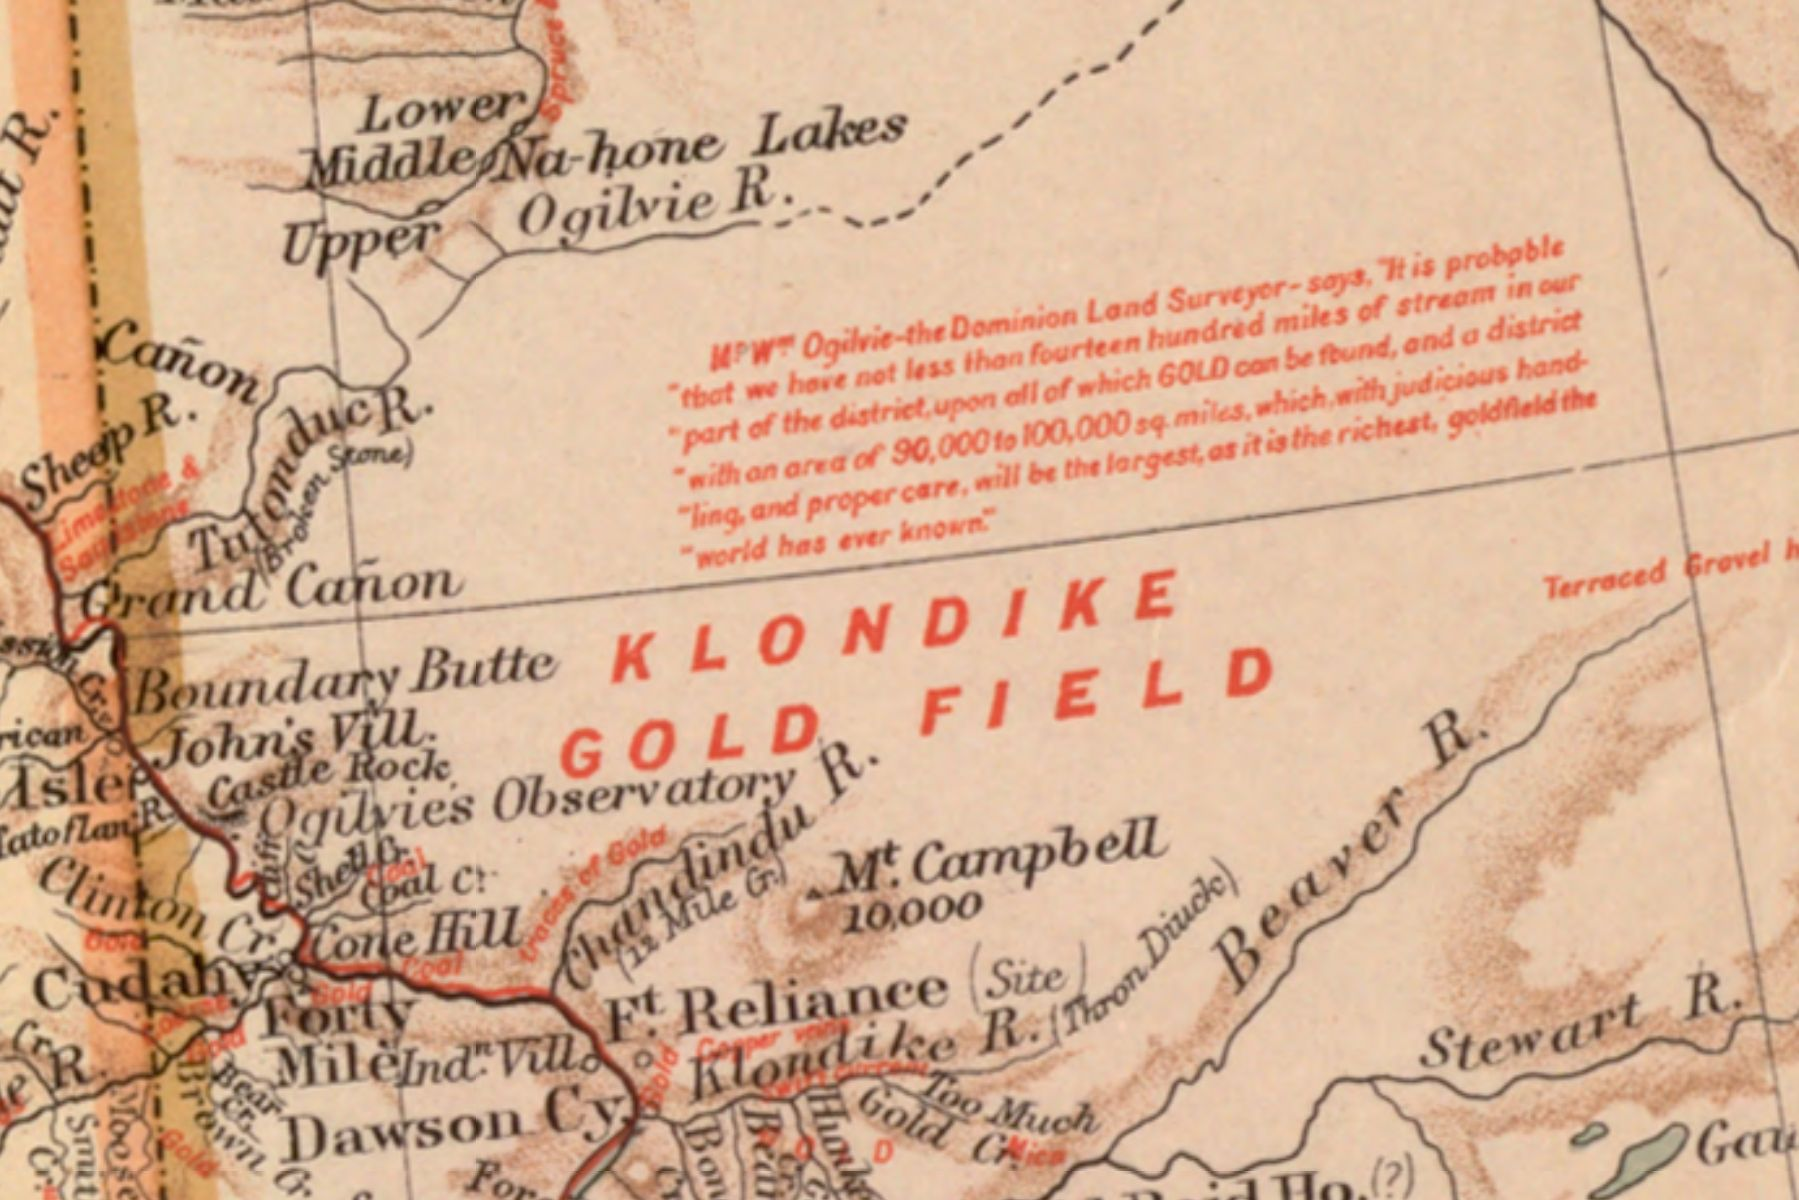 George Washington Bacon's map of the Klondike shows routesto get to Klondike gold fields, including steamships, railroads, and projected railways currently under construction.